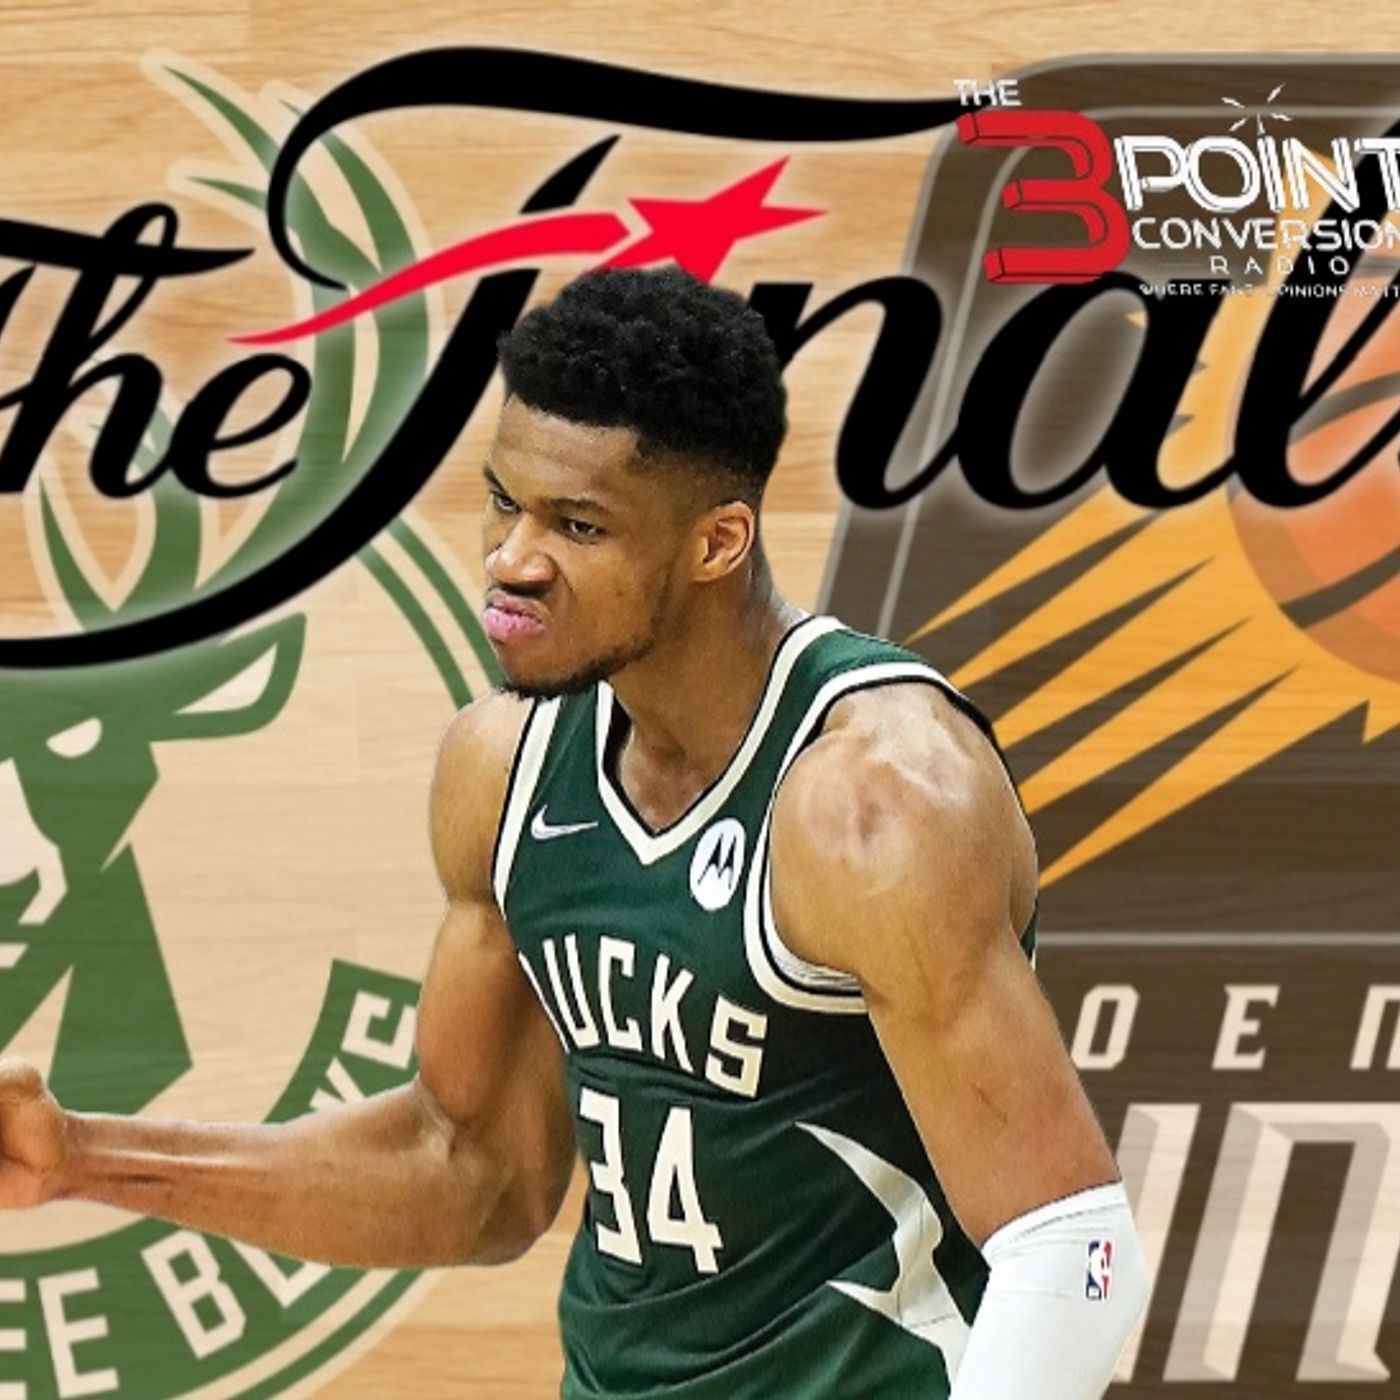 The 3 Point Conversion Sports Lounge - Will COVID-19 Ruin Sports Again, Giannis Taking Giant Steps, Best Athlete In Sports, Cubs Fire Sale